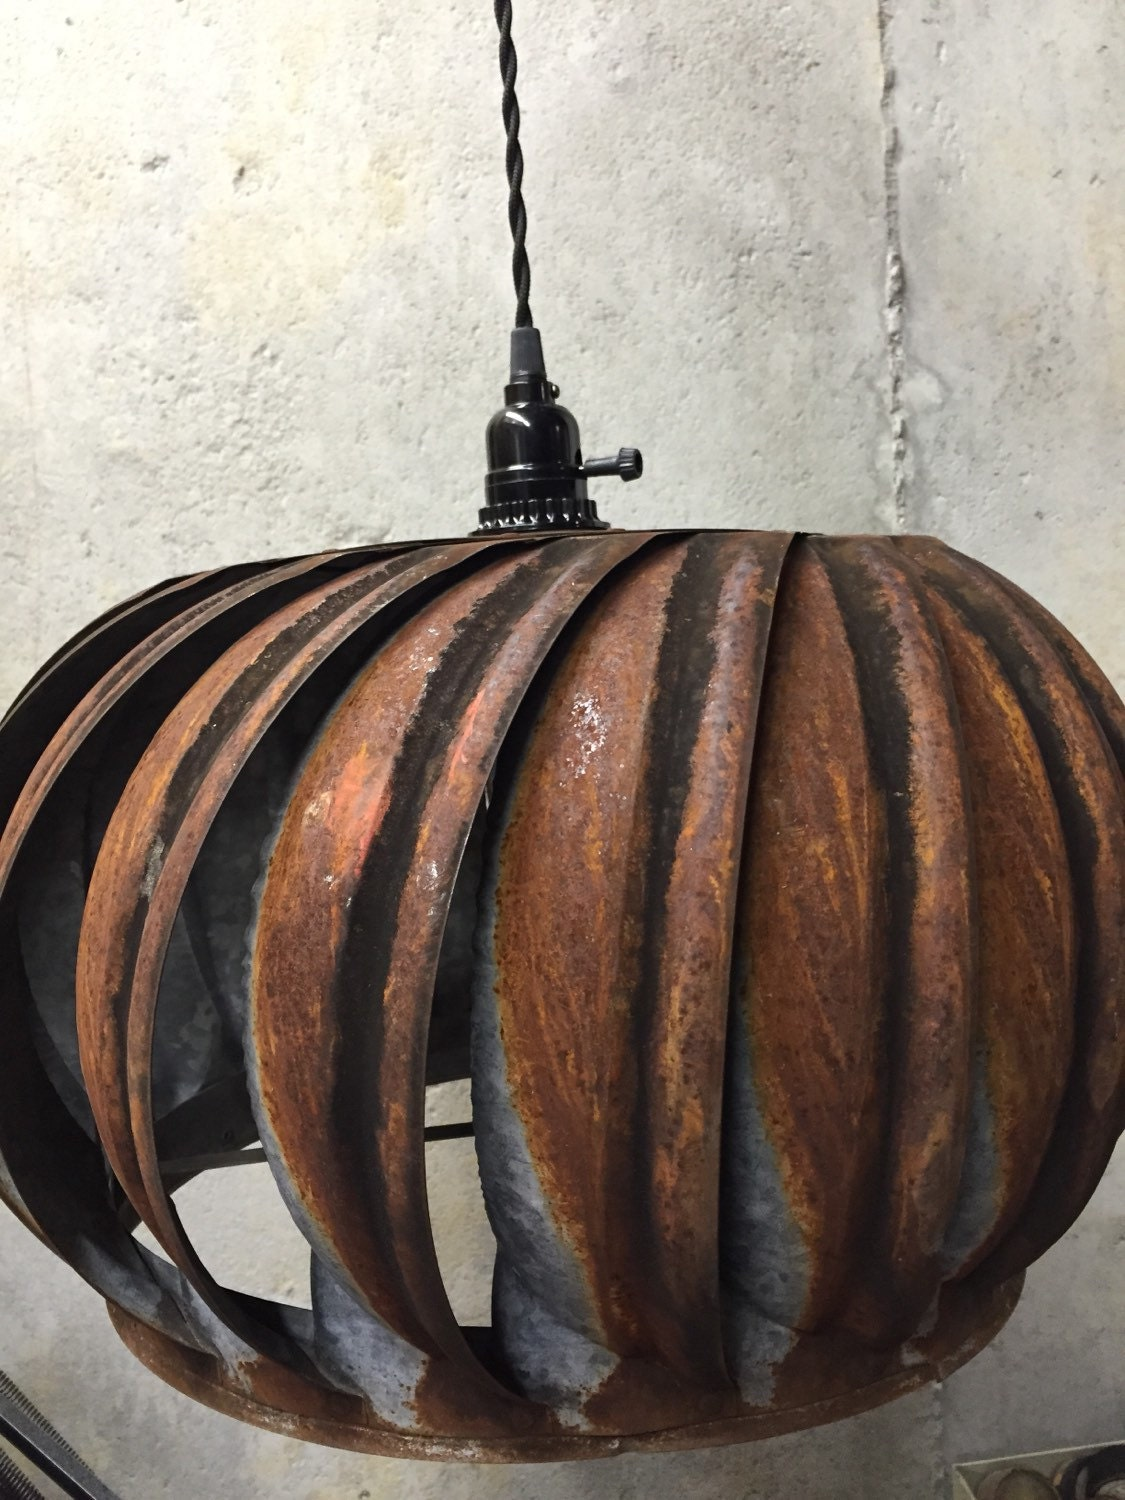 rustic industrial lighting. pendant lightrustic lightingkitchen islandlightingpendant lightingindustrial lightingfarmhouse chandelierrustic chandeliersteampunk rustic industrial lighting i